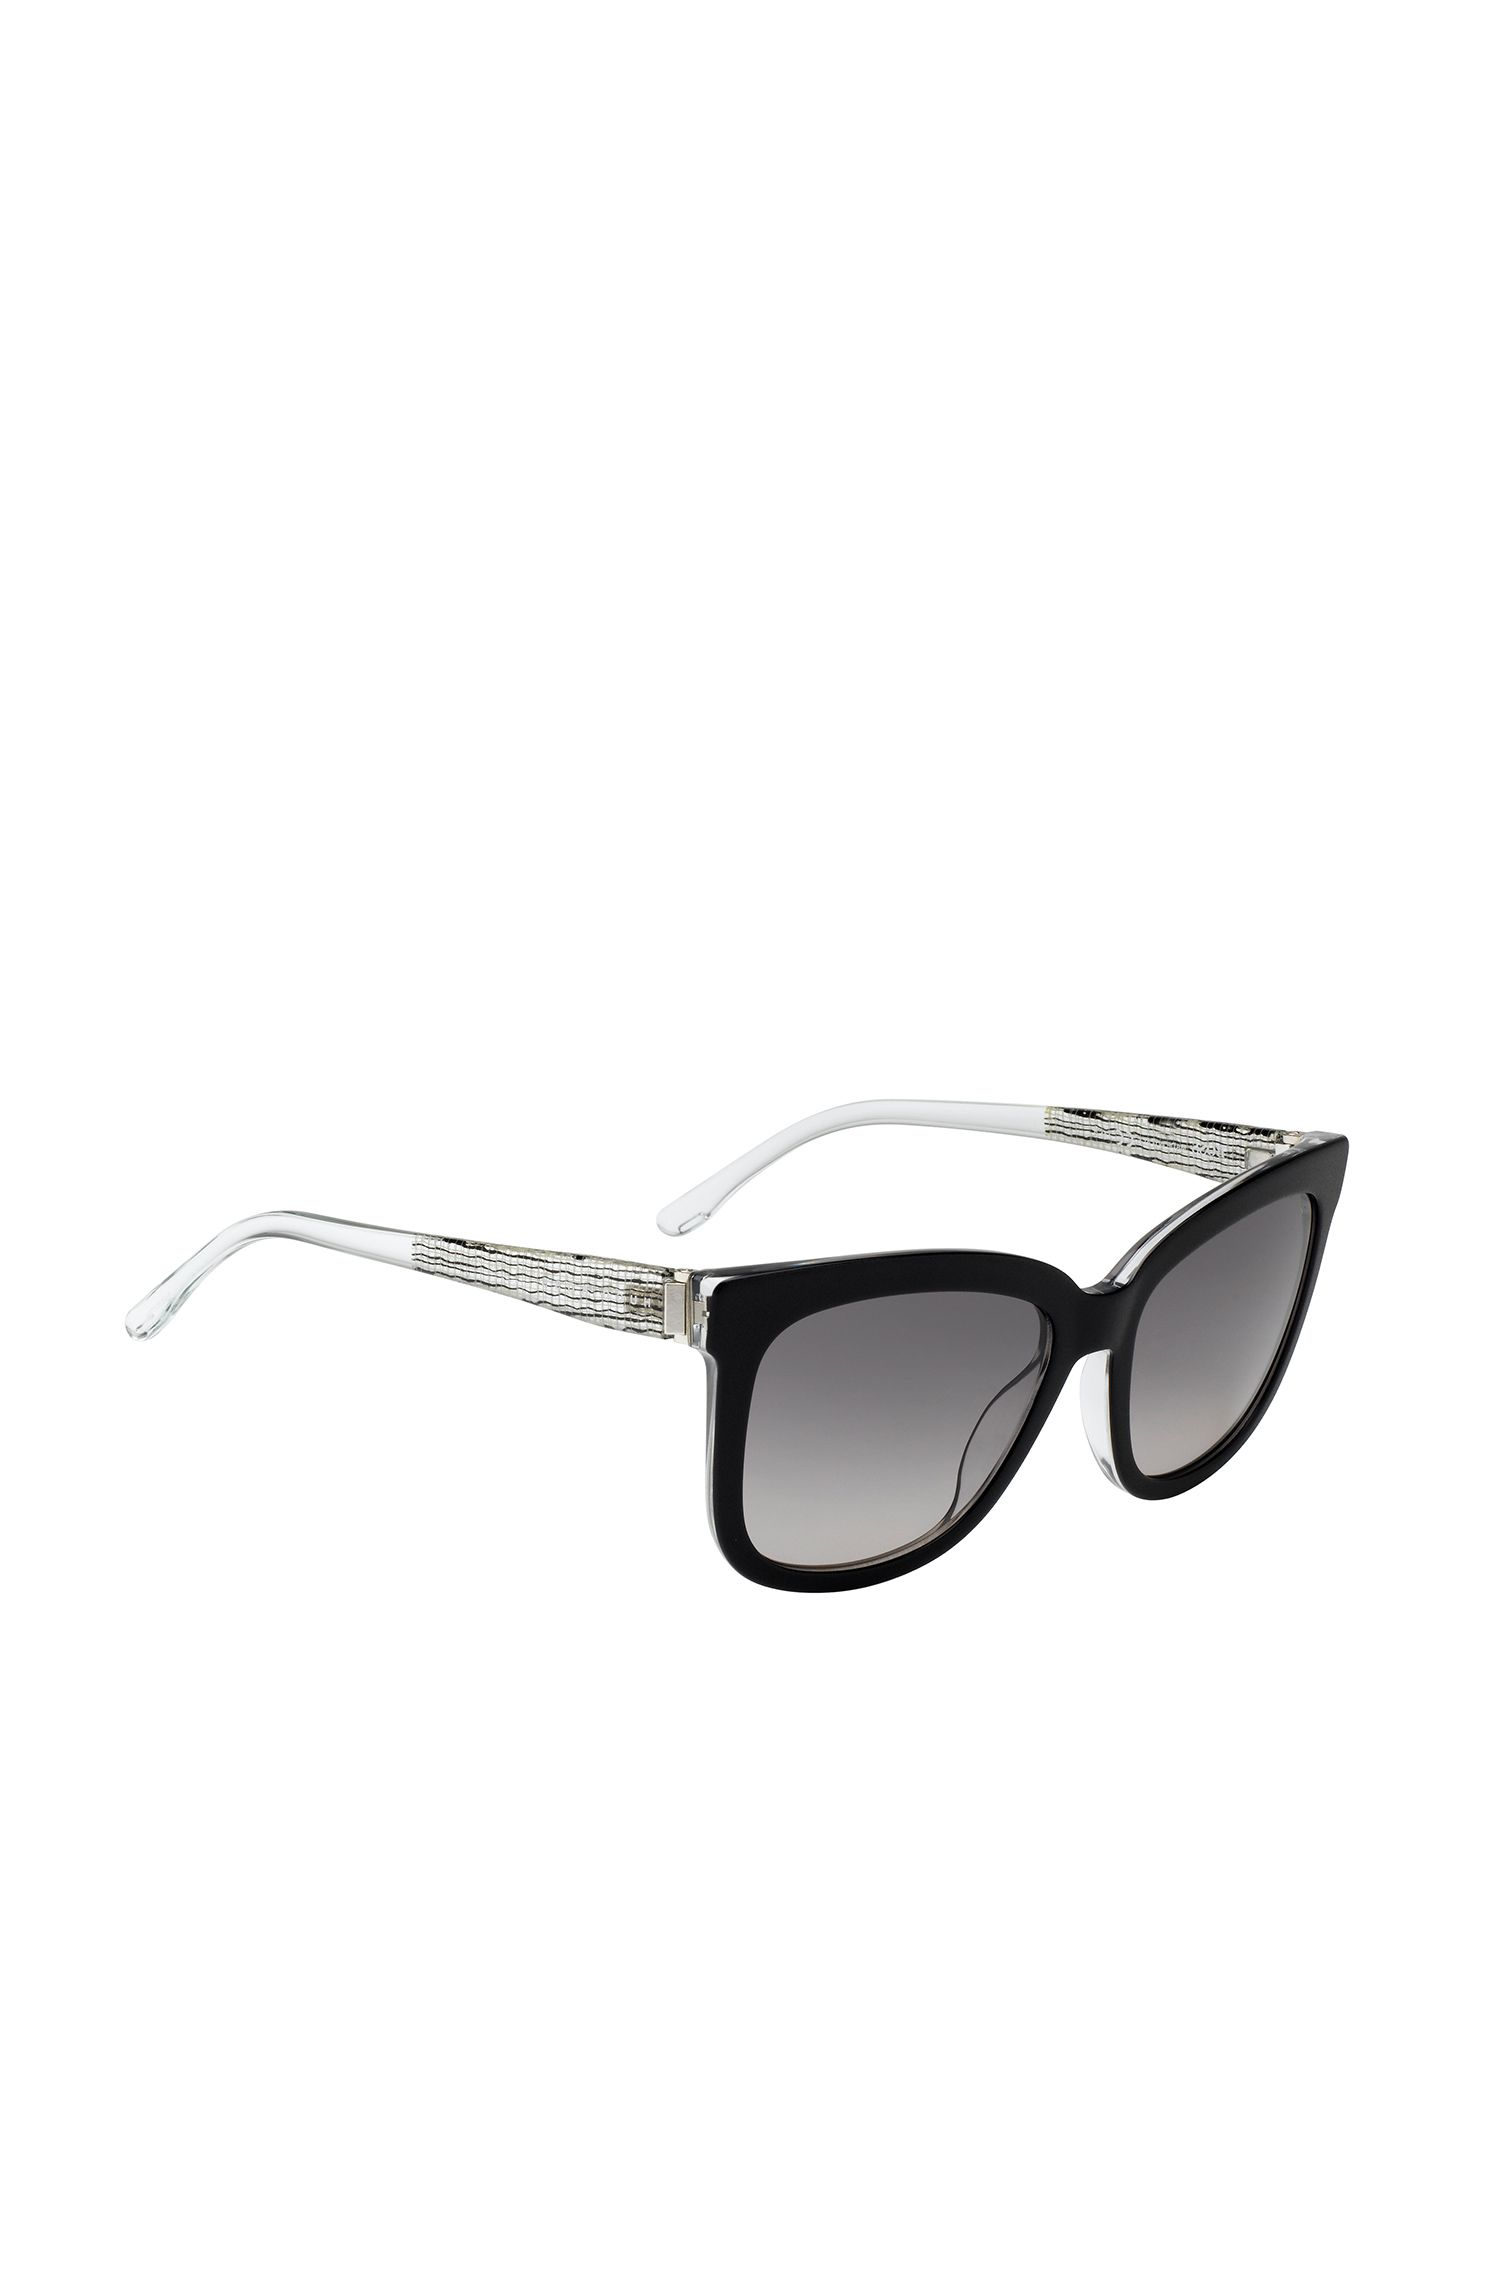 Acetate Optyl Cateye Sunglasses | BOSS 0850S, Assorted-Pre-Pack